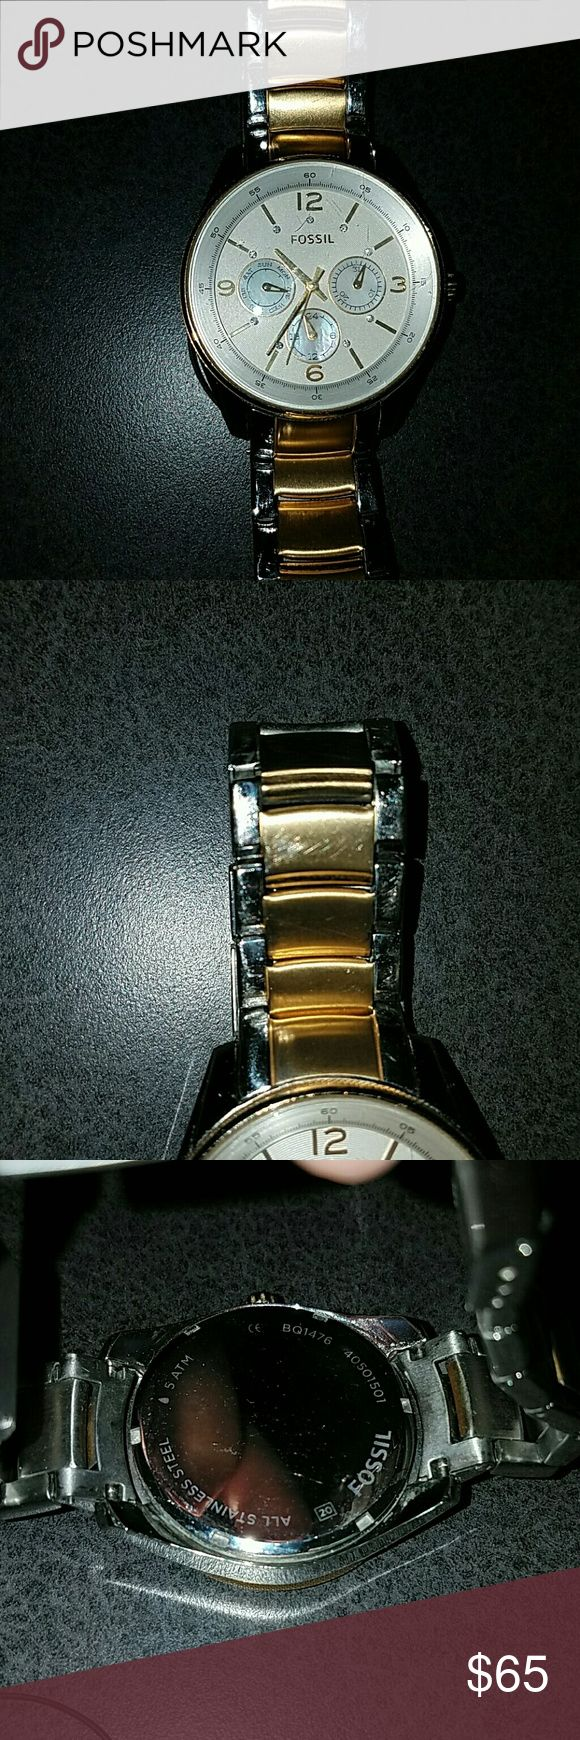 Fossil watch Two tone fossil watch, gold and silver. White face. In great condition. A few small scratches shown on the photos above. Comes with the box. Fossil Accessories Watches